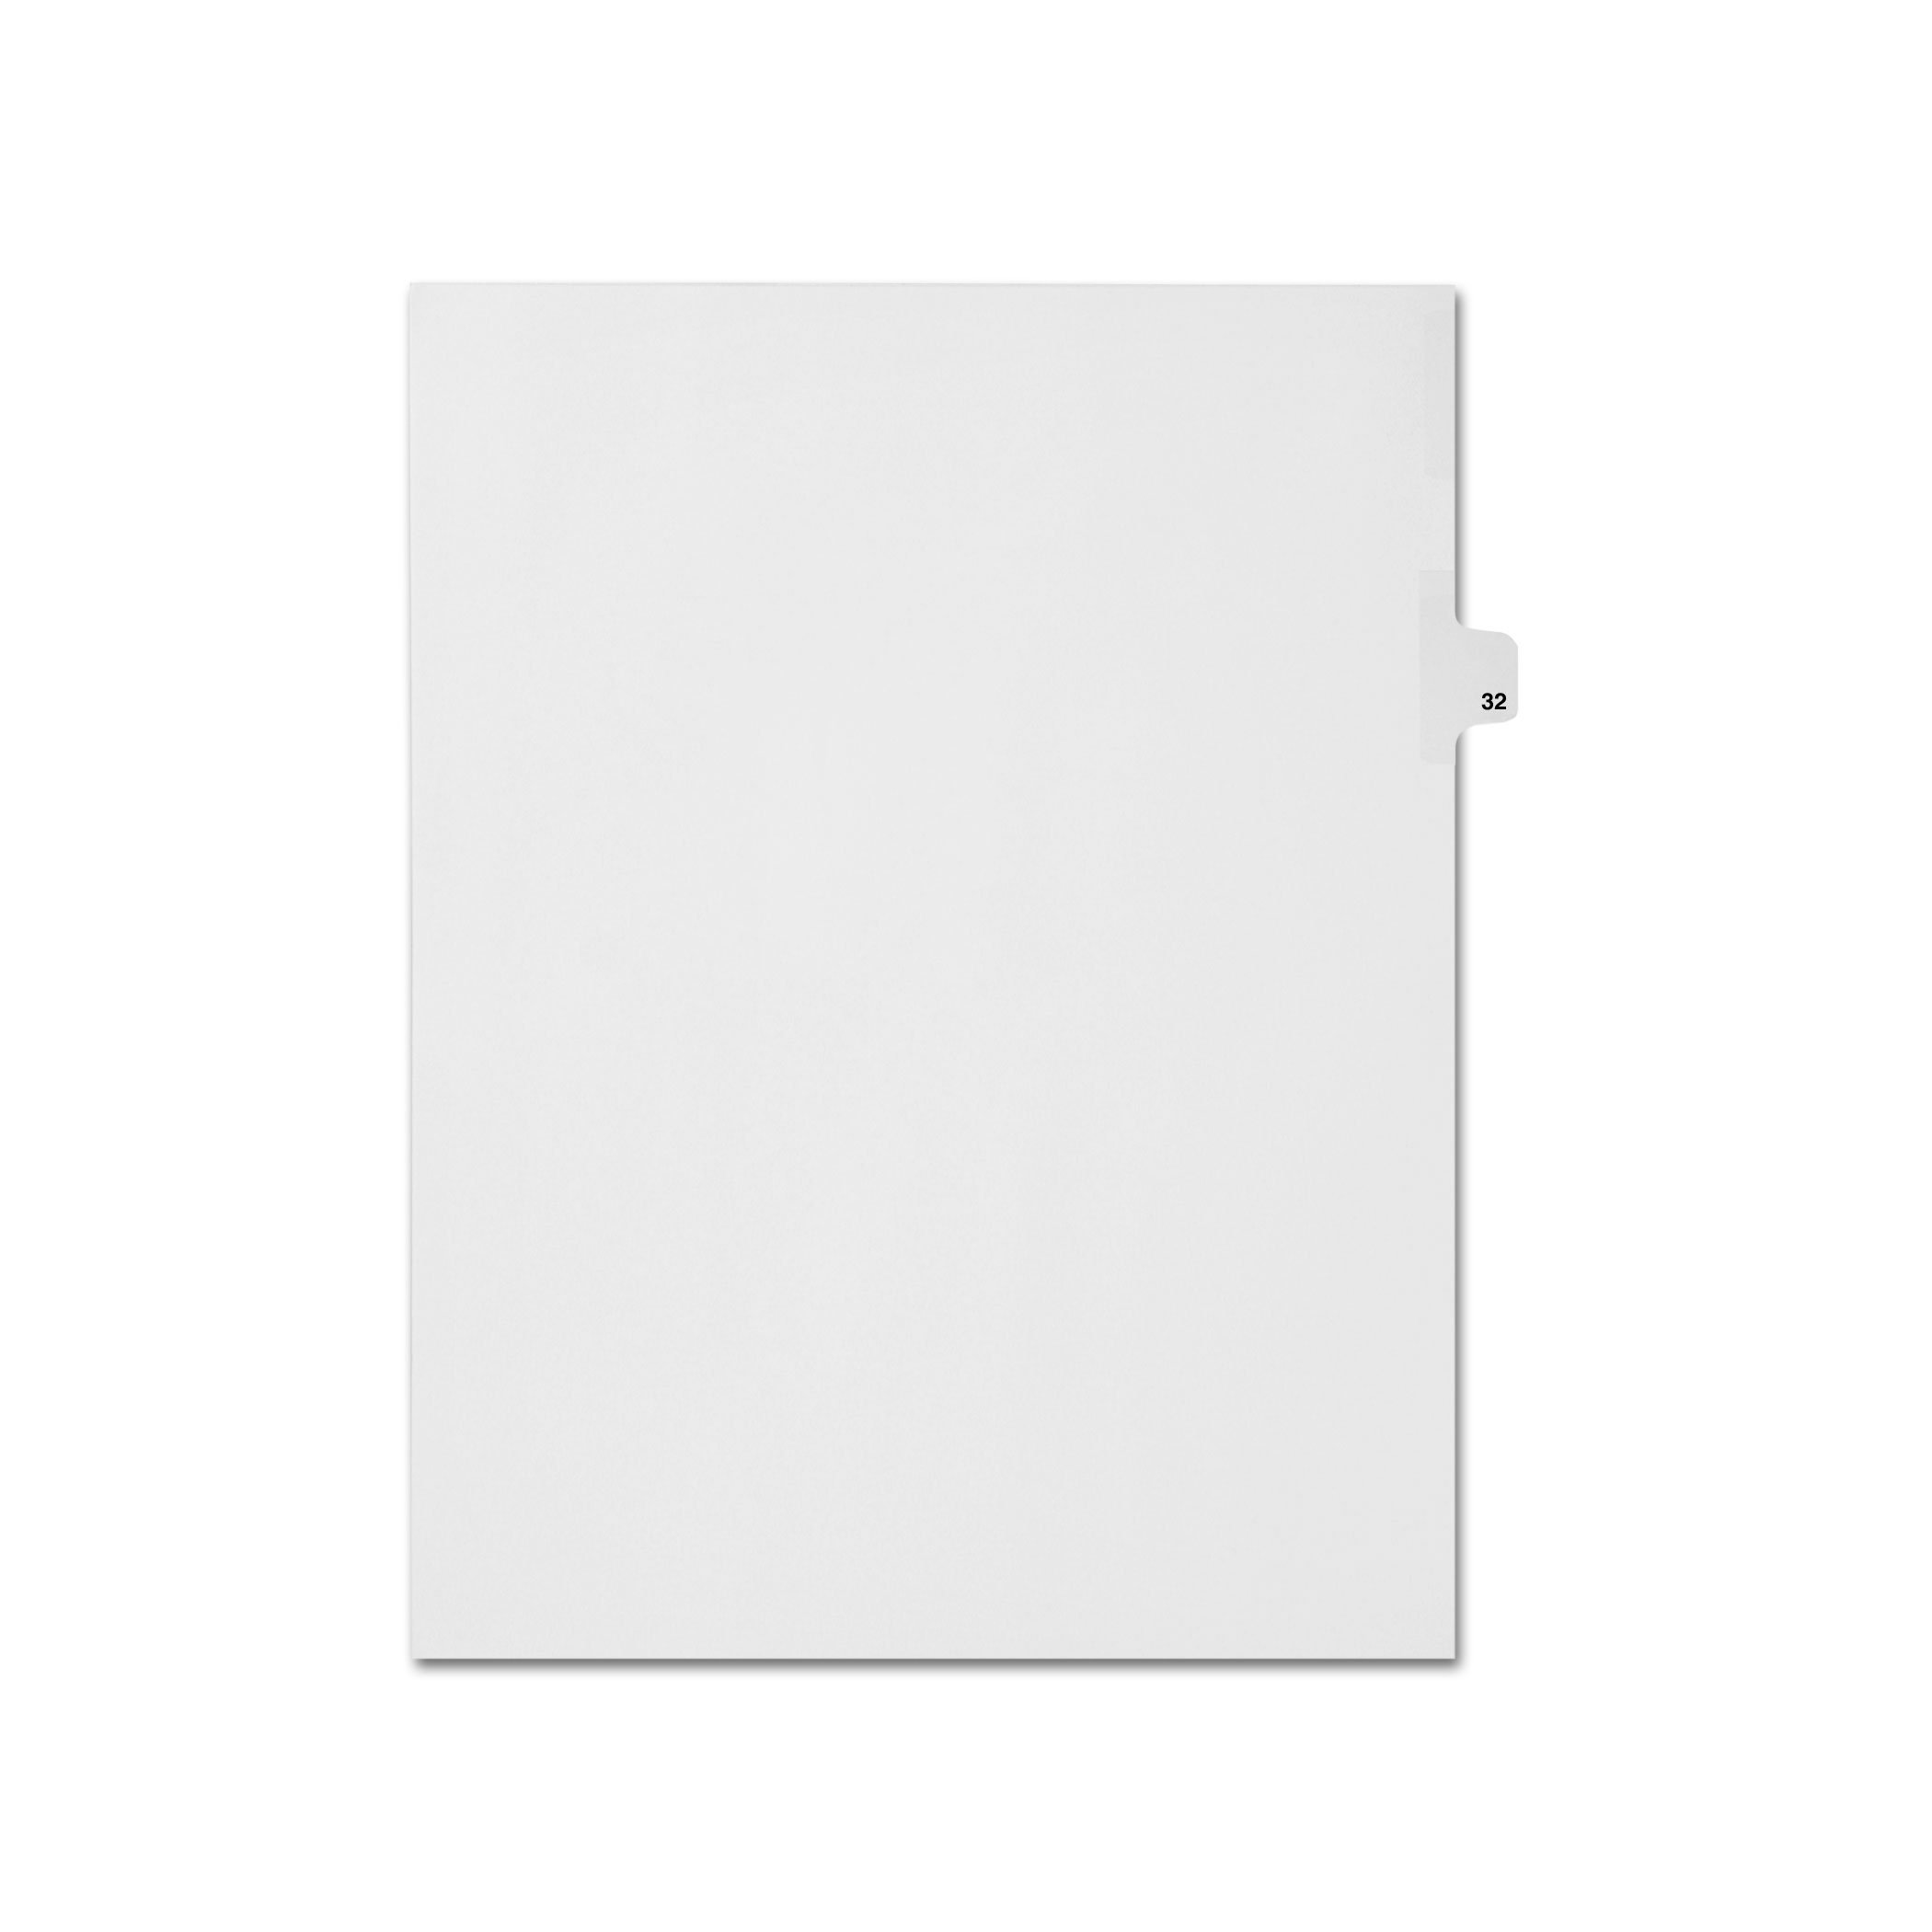 AMZfiling Individual Legal Index Tab Dividers, Compatible with Avery- Number 32, Letter Size, White, Side Tabs, Position 7 (25 Sheets/pkg)